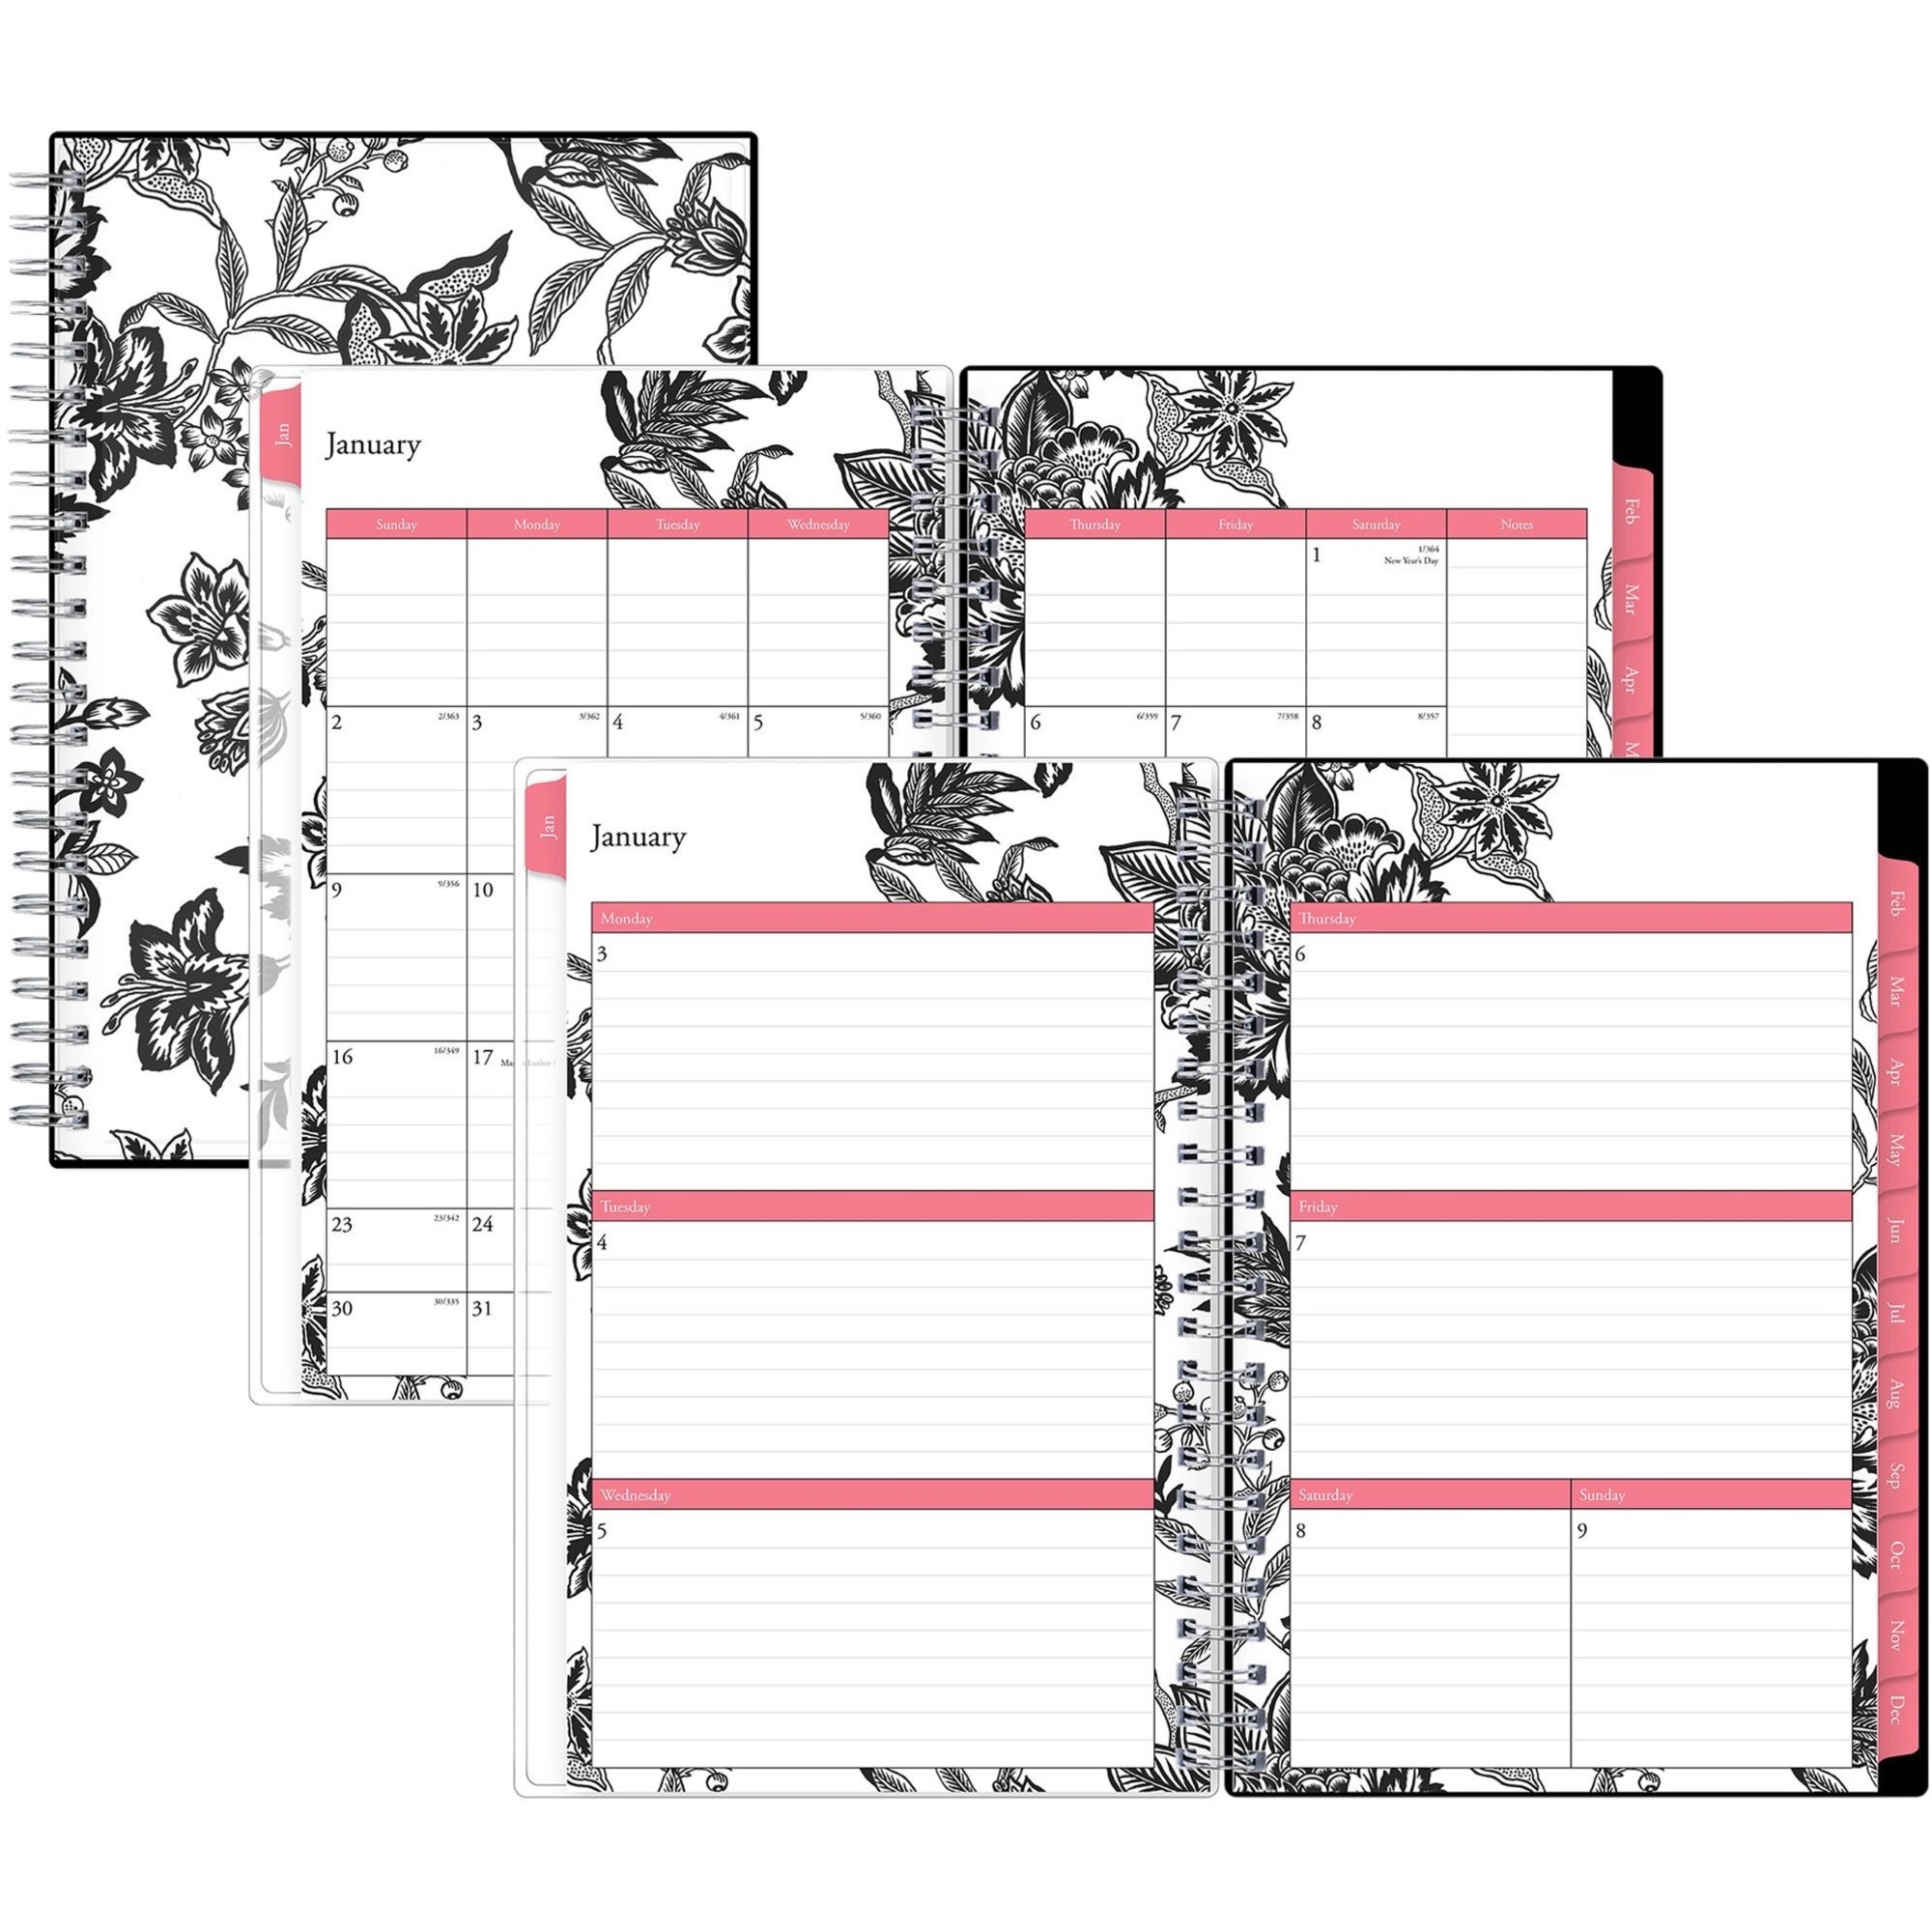 Blue Sky Barcelona Weekly/Monthly Planner - Julian - Weekly, Monthly - 1 Year - January till December - 1 Week Double Page Layout - Multicolor - Bleed Resistant, Double-sided, Storage Pocket, Reference Calendar